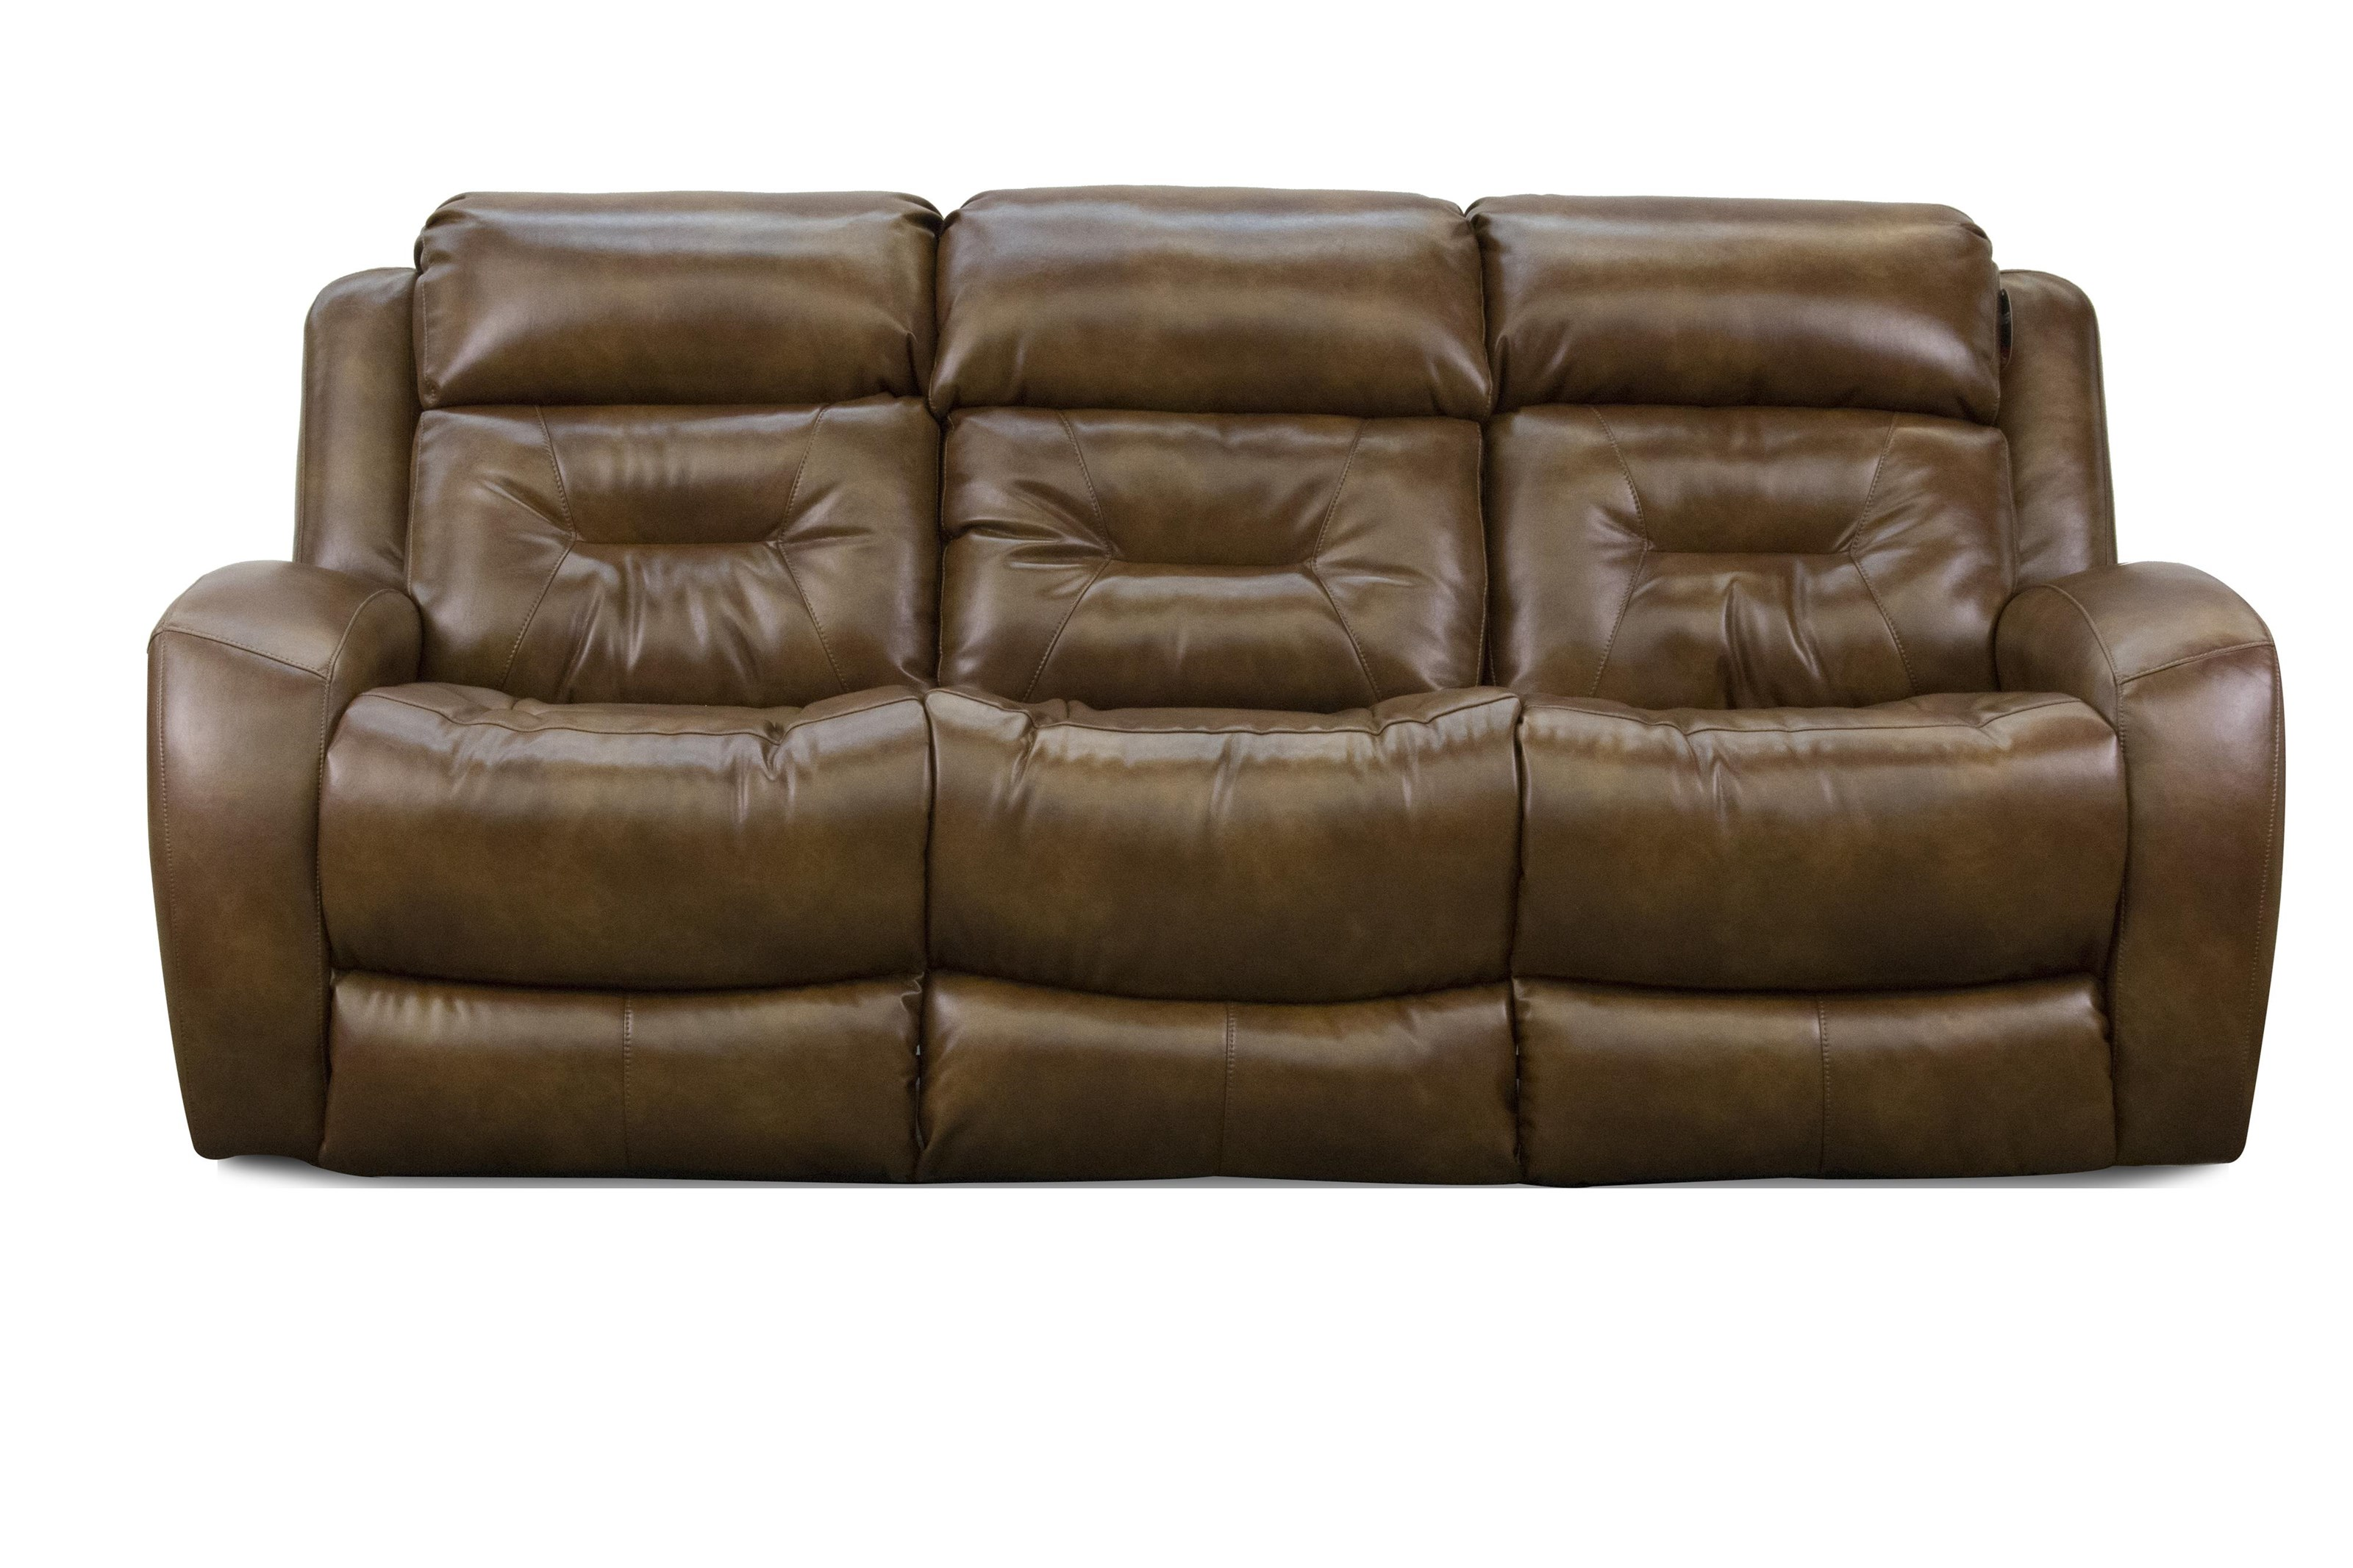 ComfortZone Showcase Recline Sofa w/ Pwr Headrest & Drop Table - Item Number: 17316-PPDRS